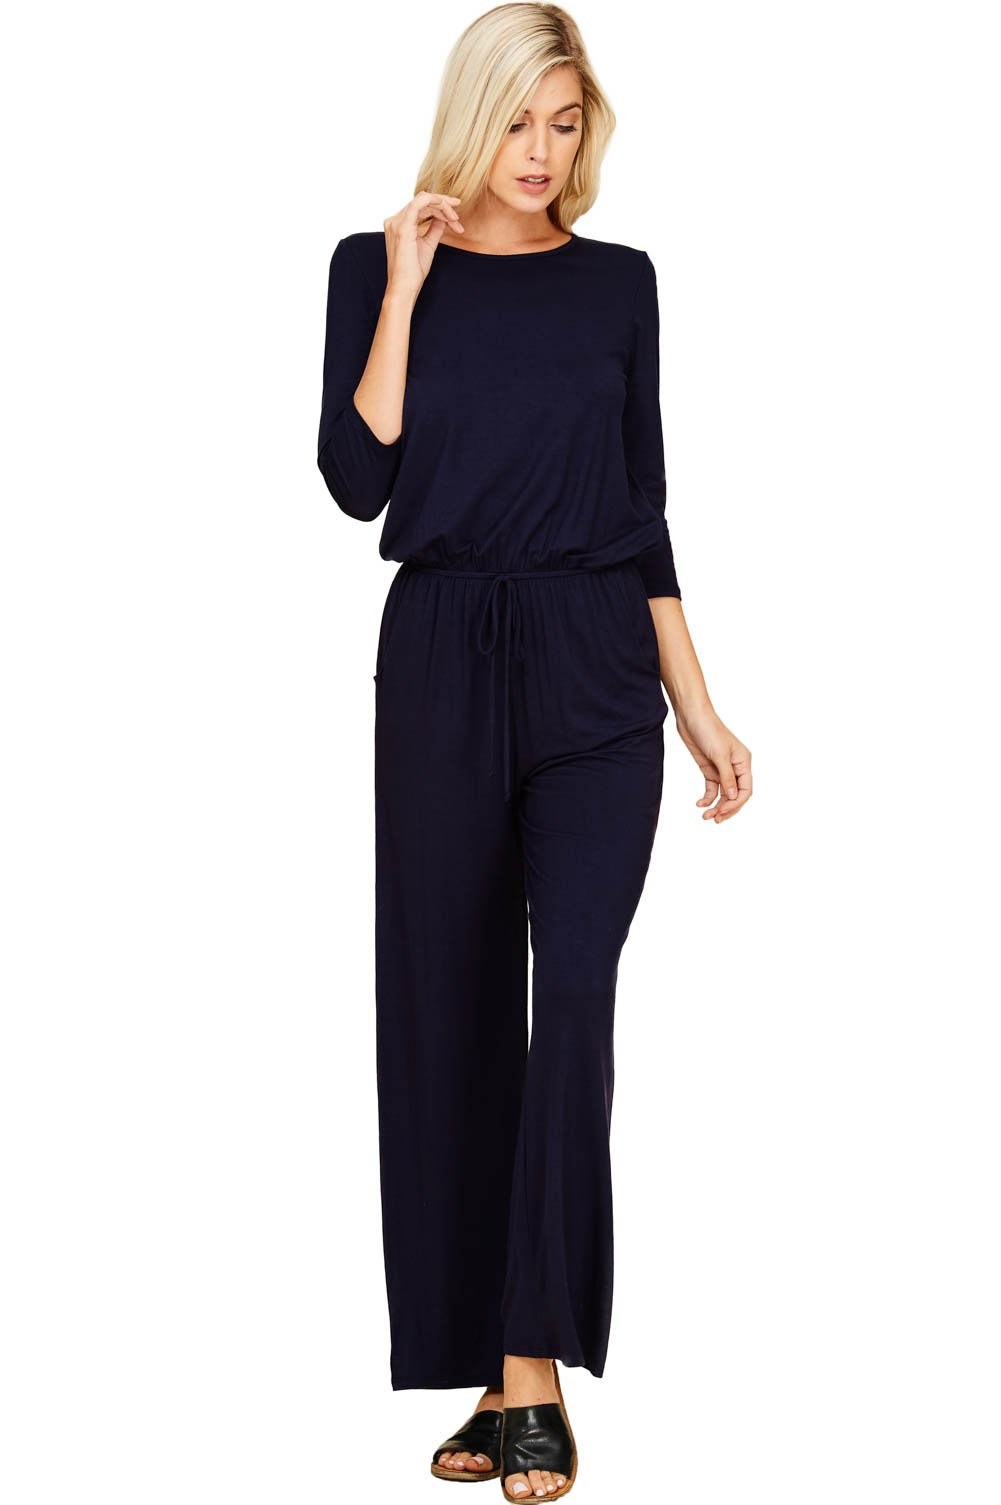 bc338ebf426 Annabelle Women s Solid Knit 3 4 Sleeve Back Keyhole Full Length Pocket  Jumpsuits S-3XL   Jumpsuits